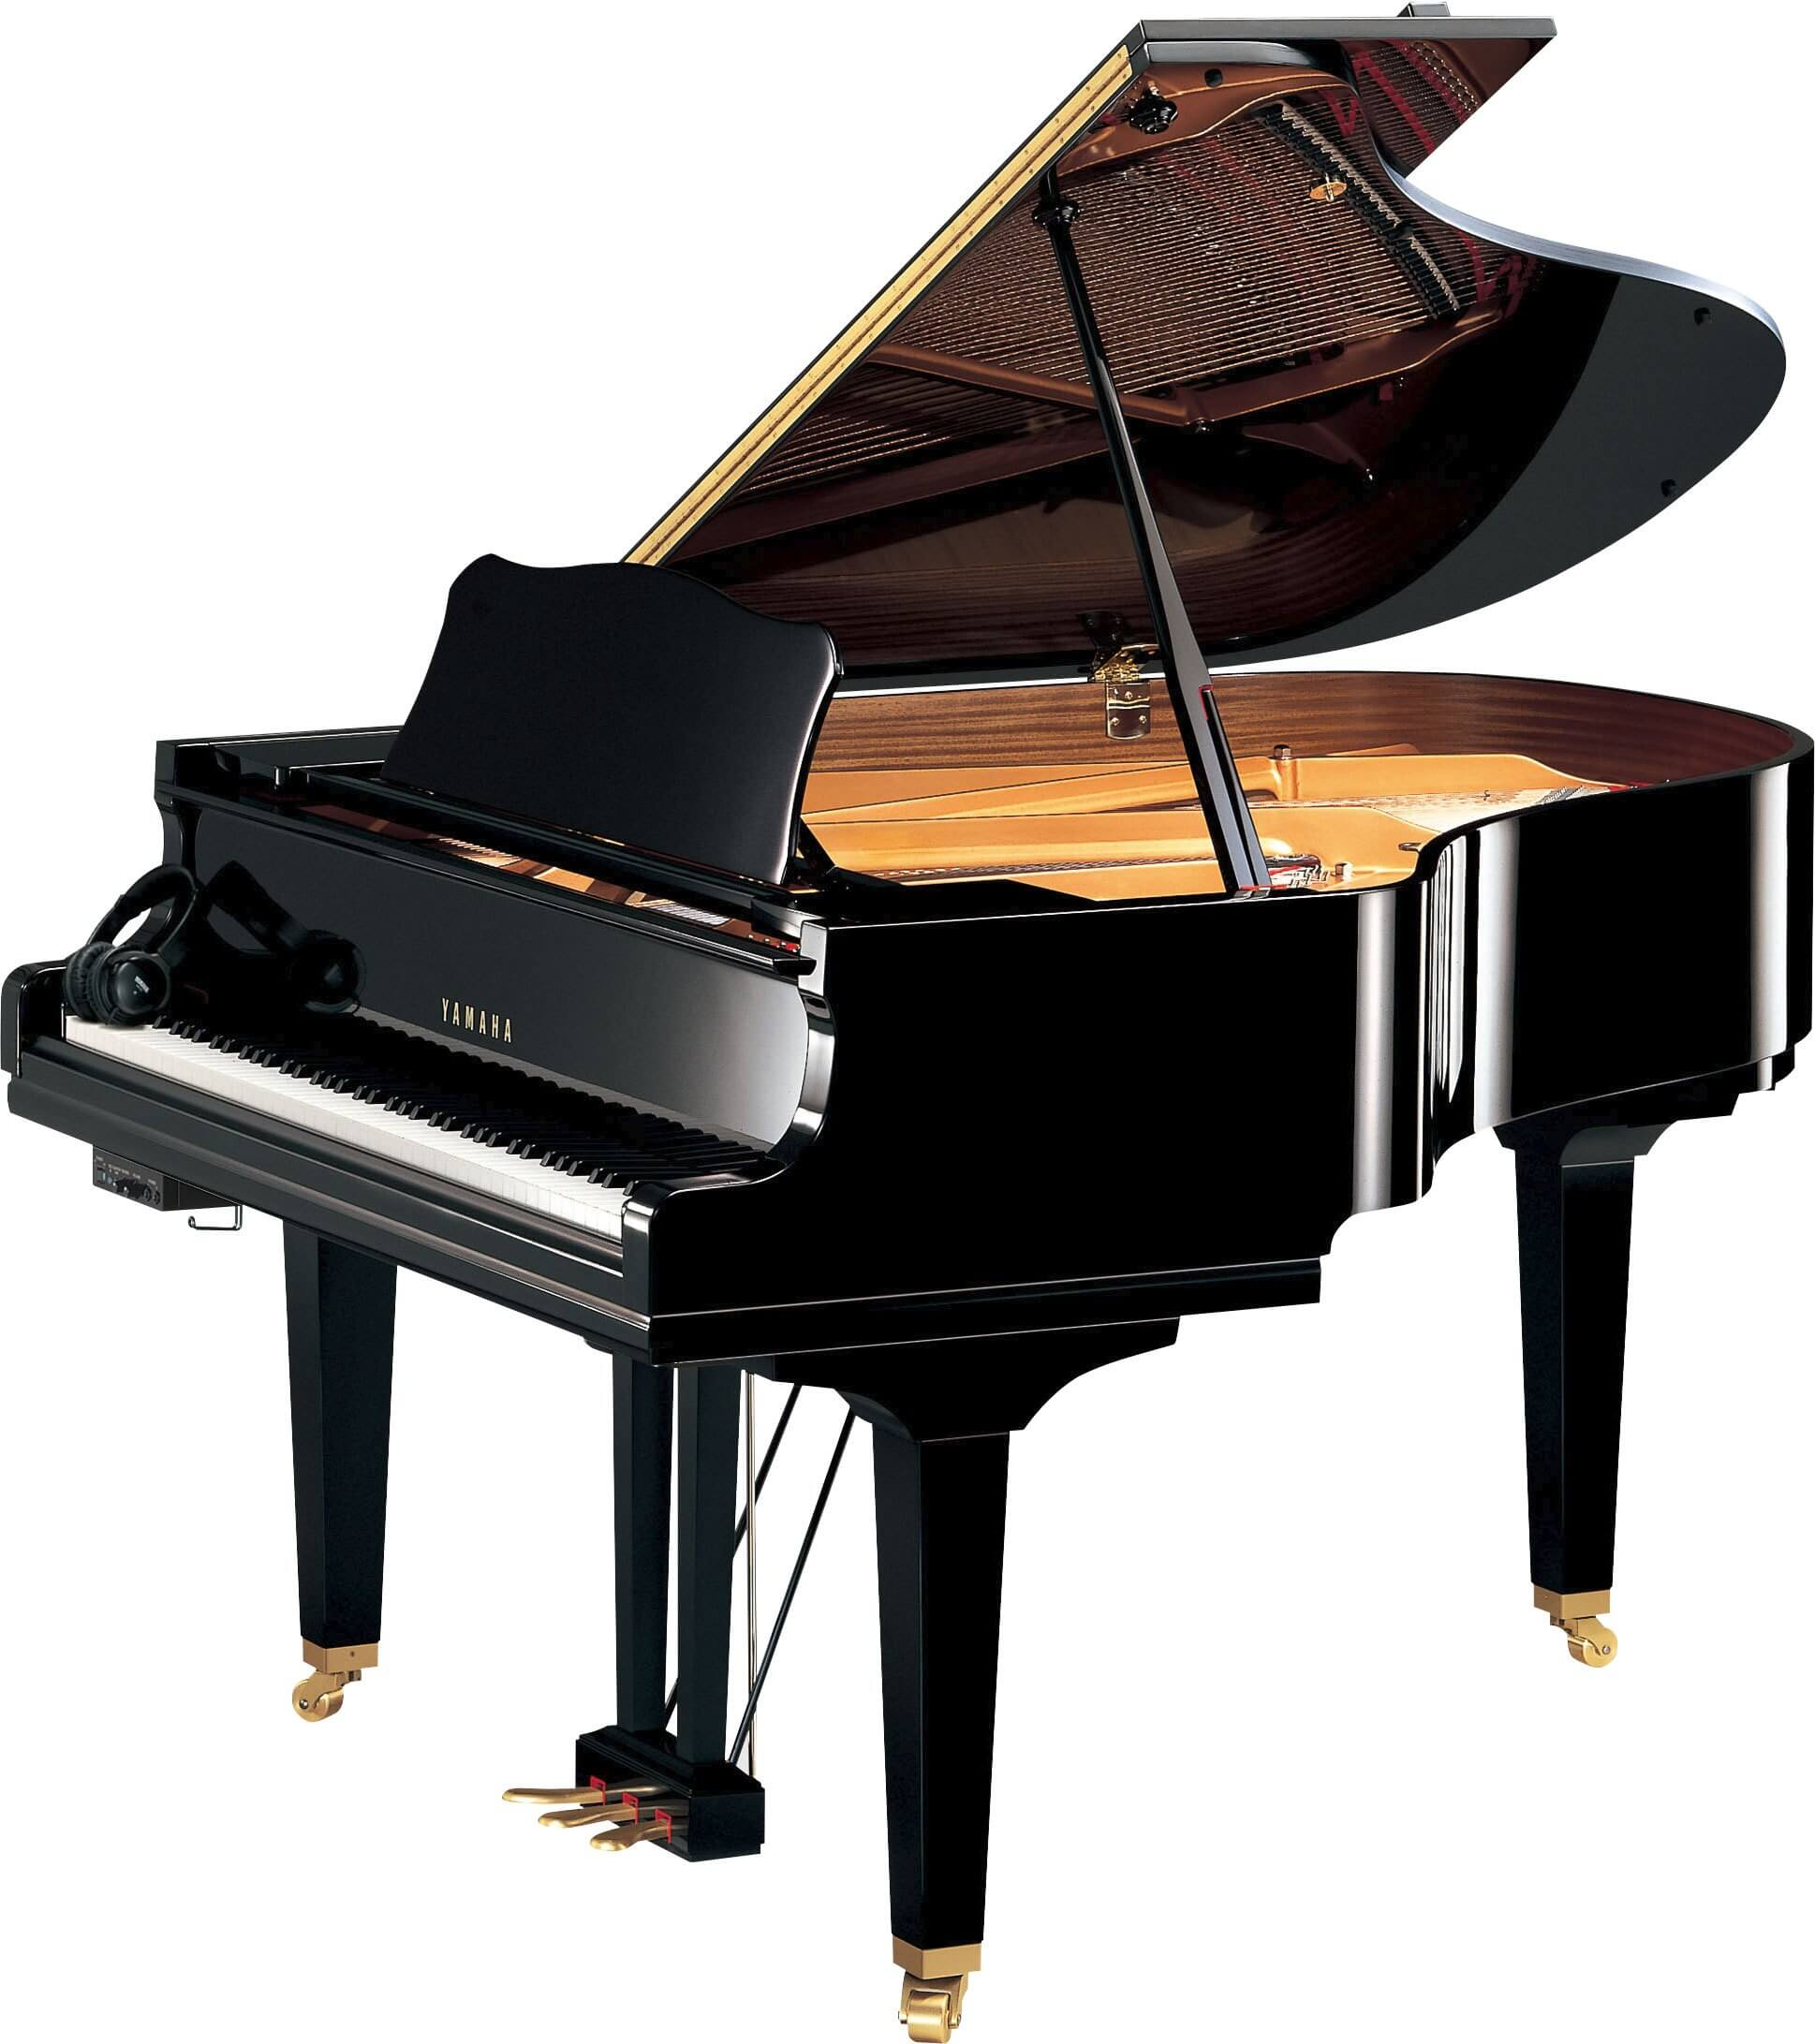 Piano De Cola Yamaha GC2